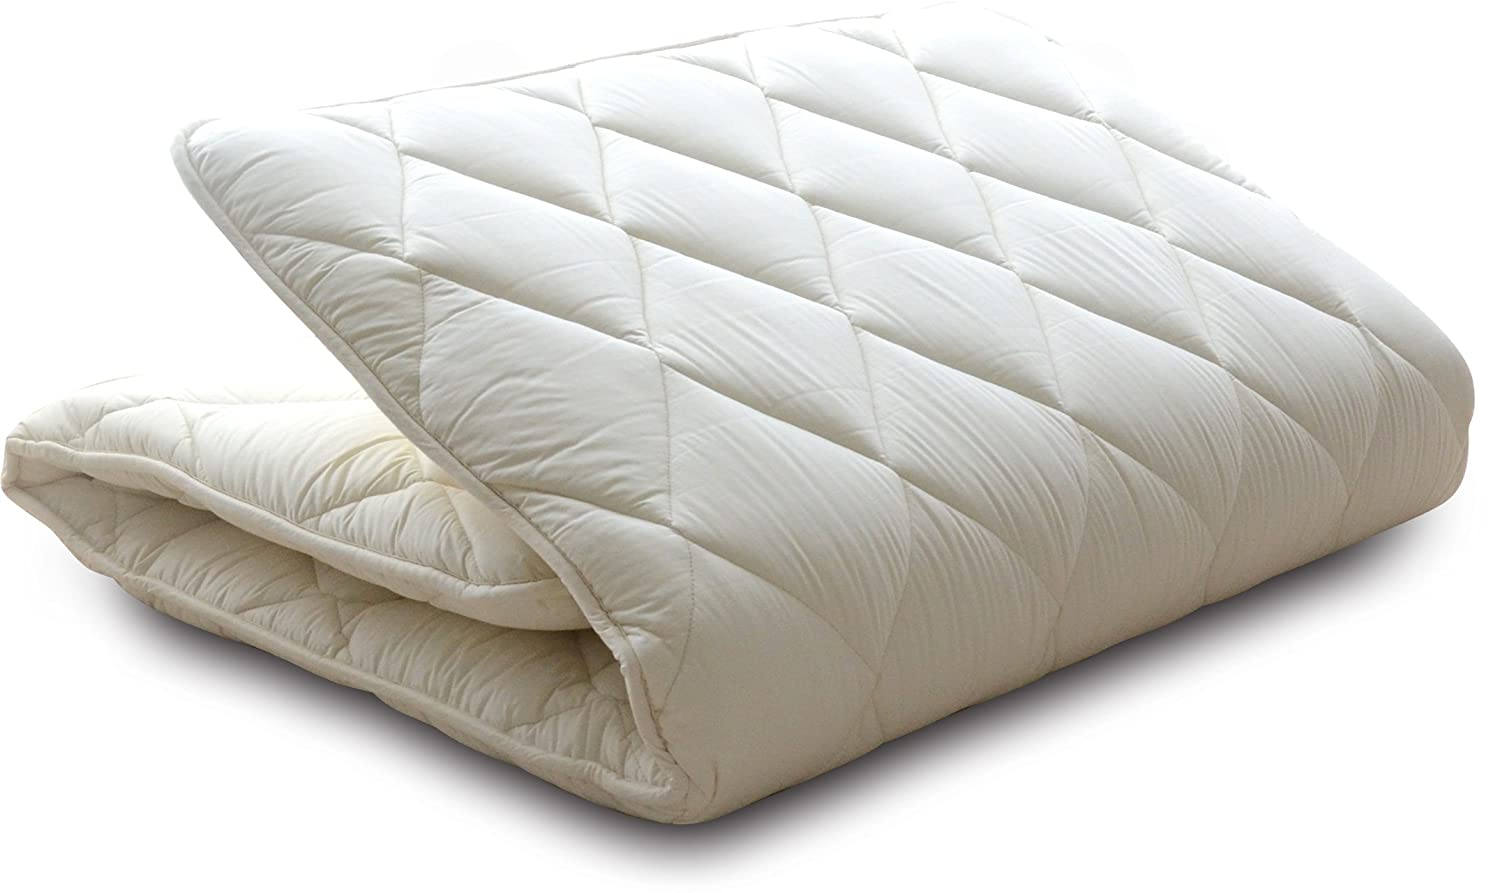 Choosing the Futon Mattress Sizes